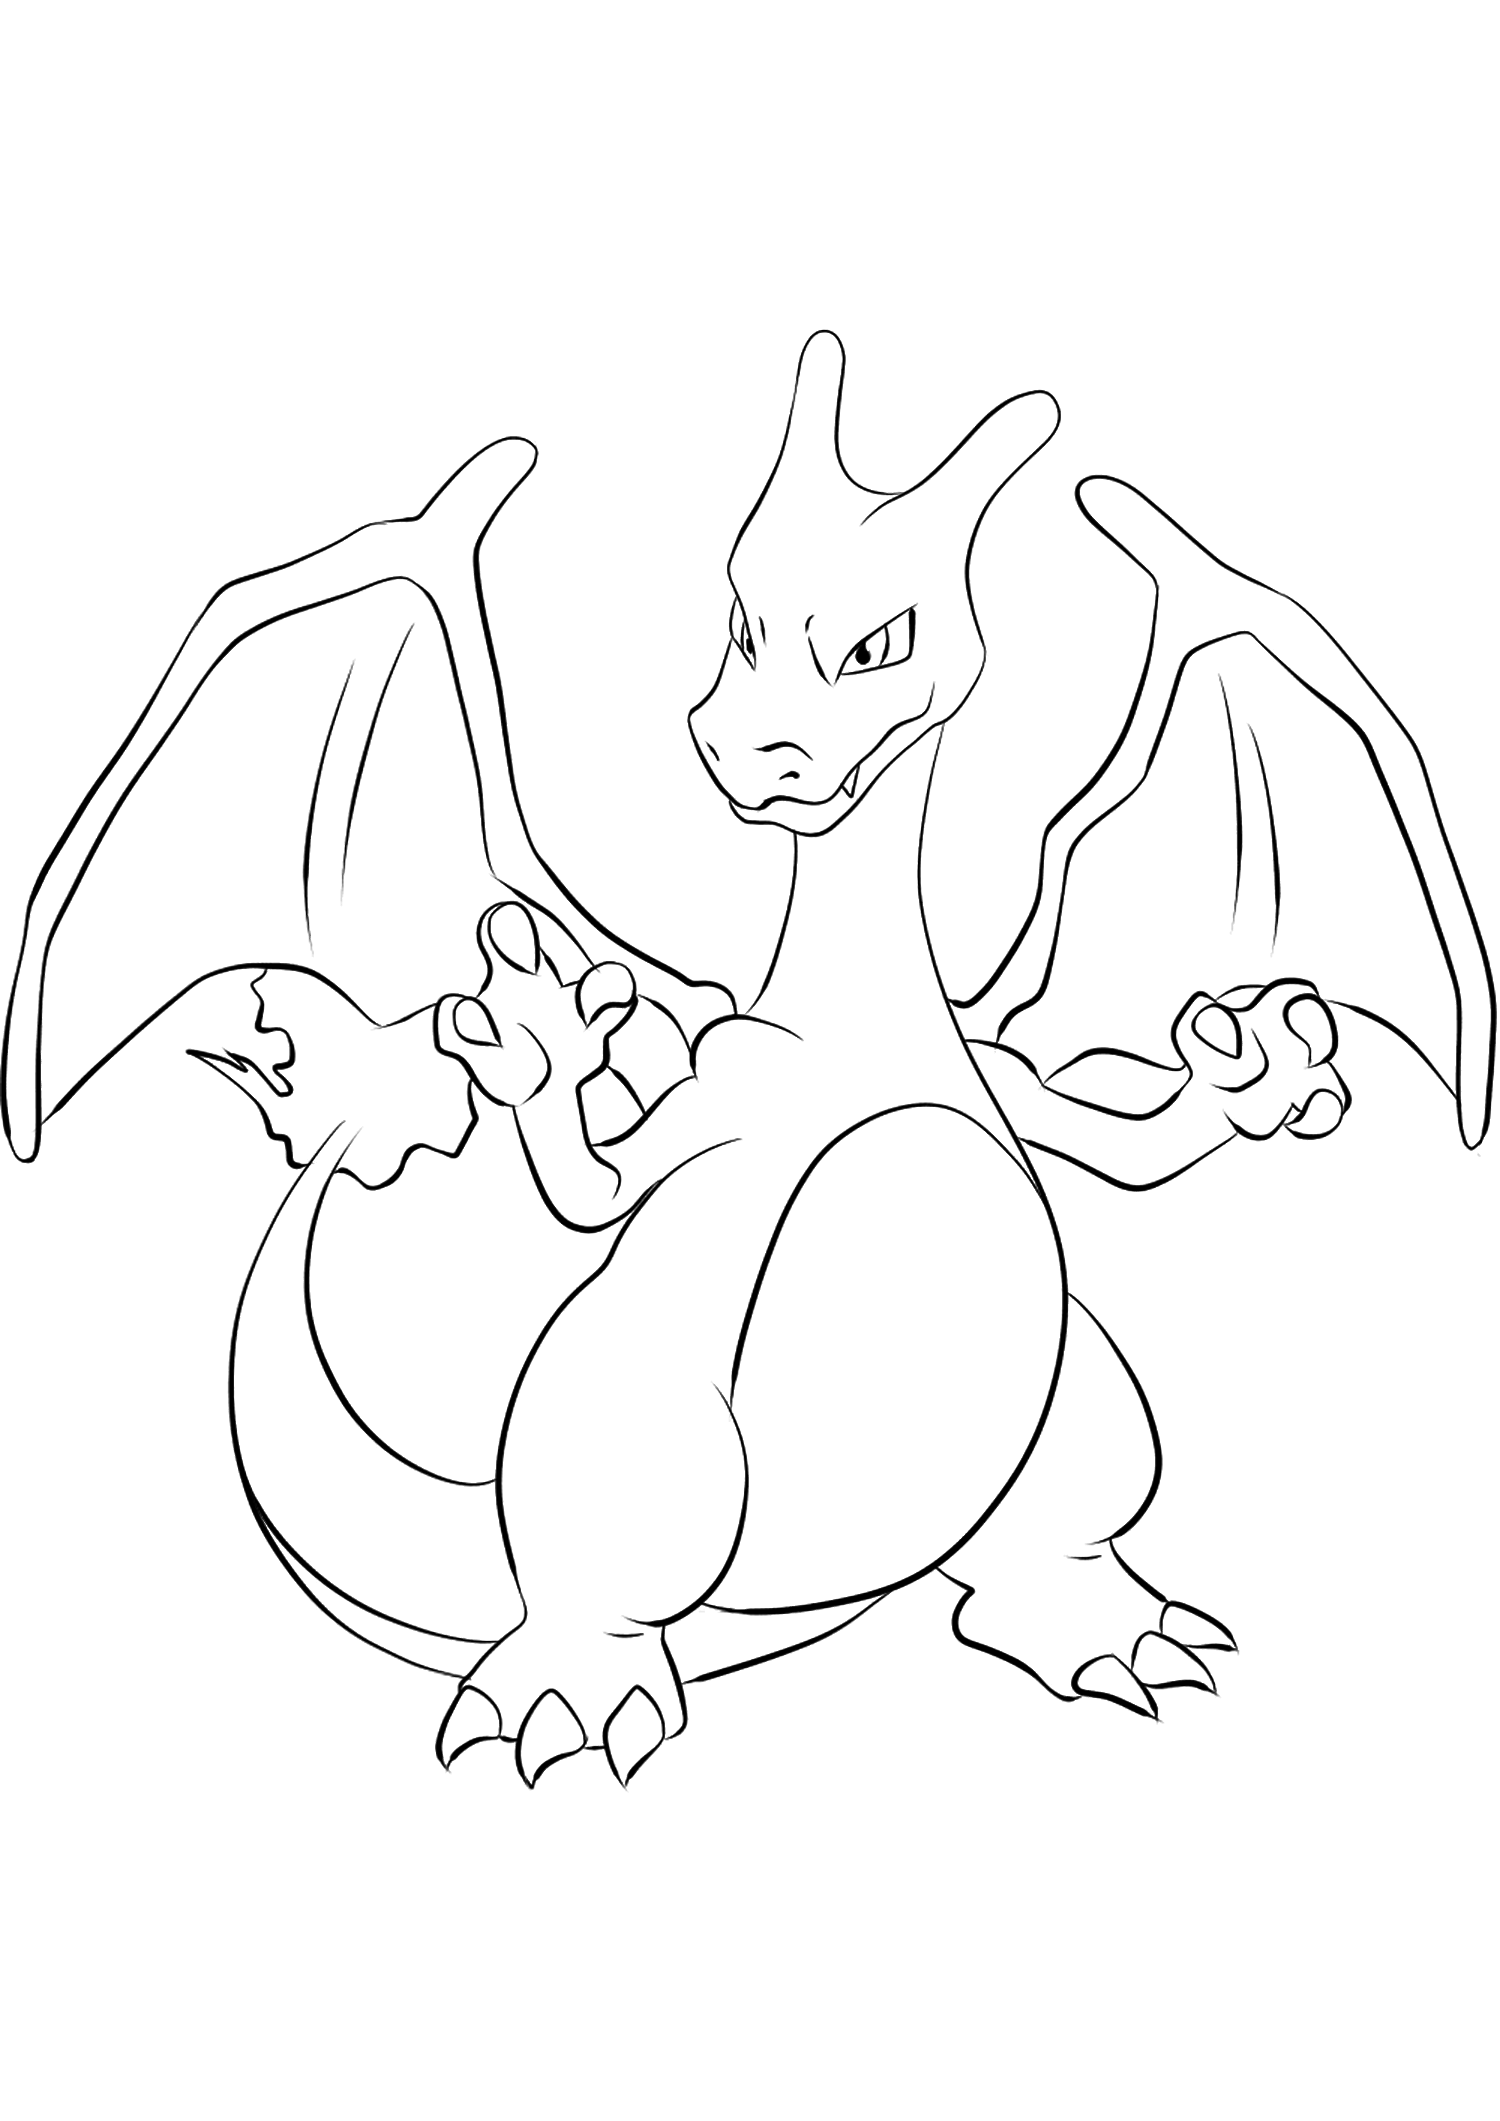 Pokemon Coloring Pages Charizard : pokemon, coloring, pages, charizard, Charizard, No.06, Pokemon, Generation, Coloring, Pages